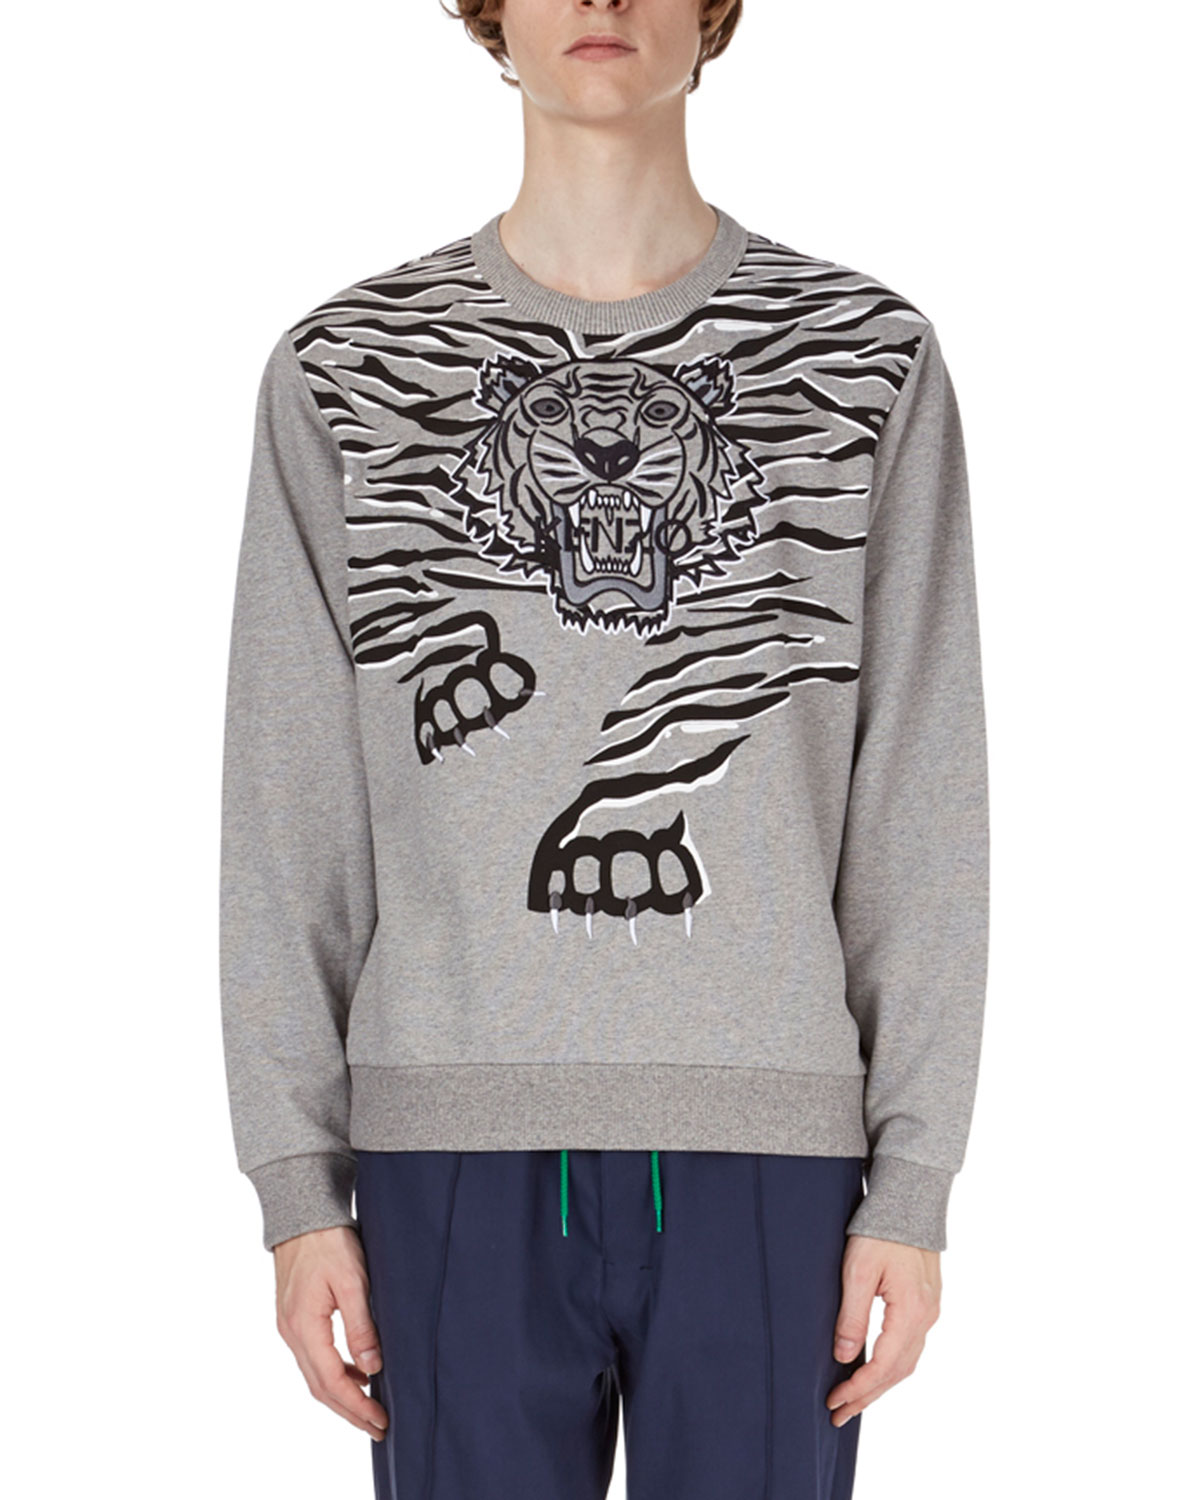 Claw Tiger Graphic Sweatshirt Claw Tiger Graphic rdhtCsQx